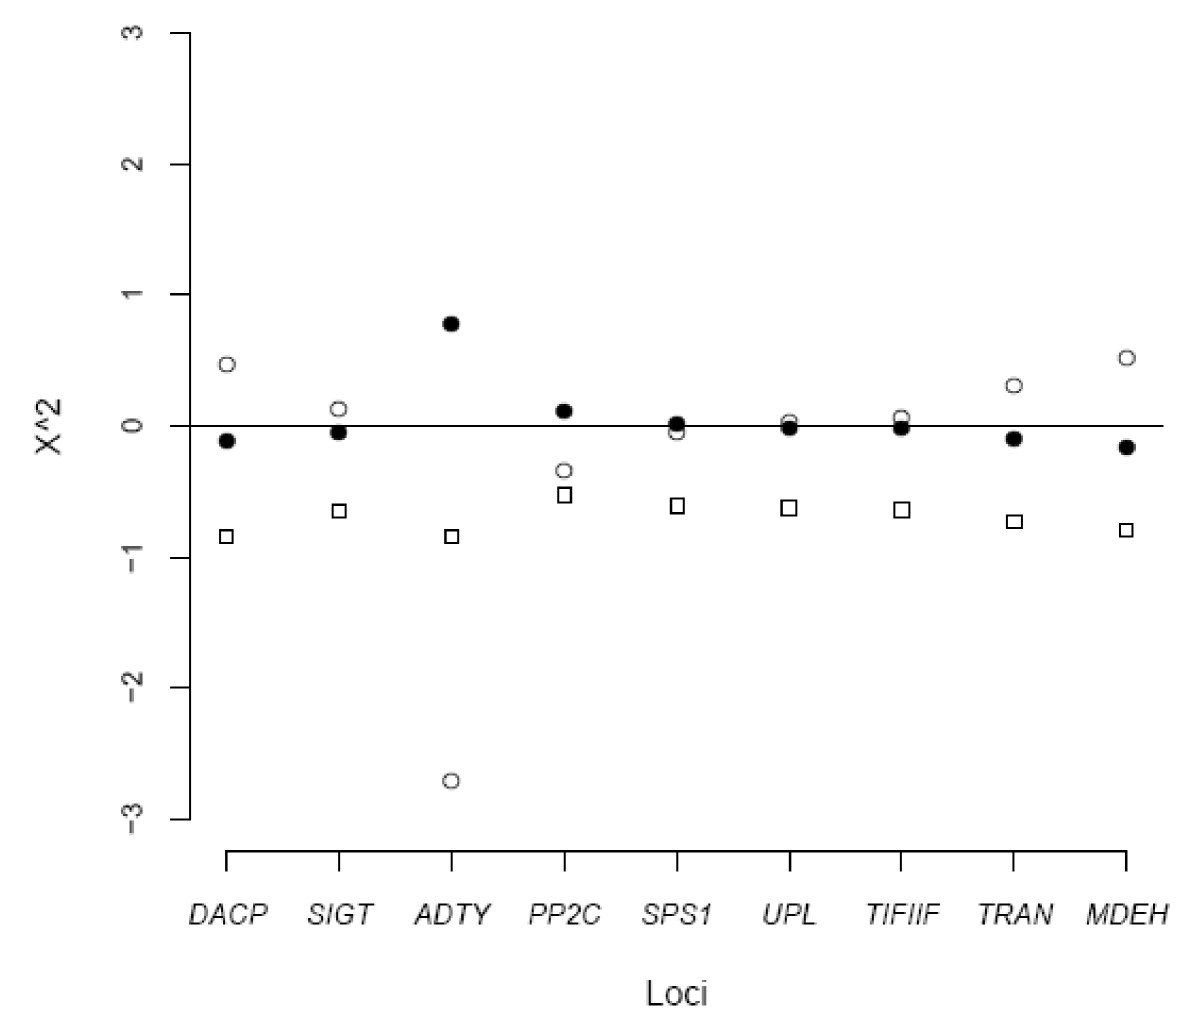 http://static-content.springer.com/image/art%3A10.1186%2F1471-2156-11-90/MediaObjects/12863_2010_Article_837_Fig1_HTML.jpg